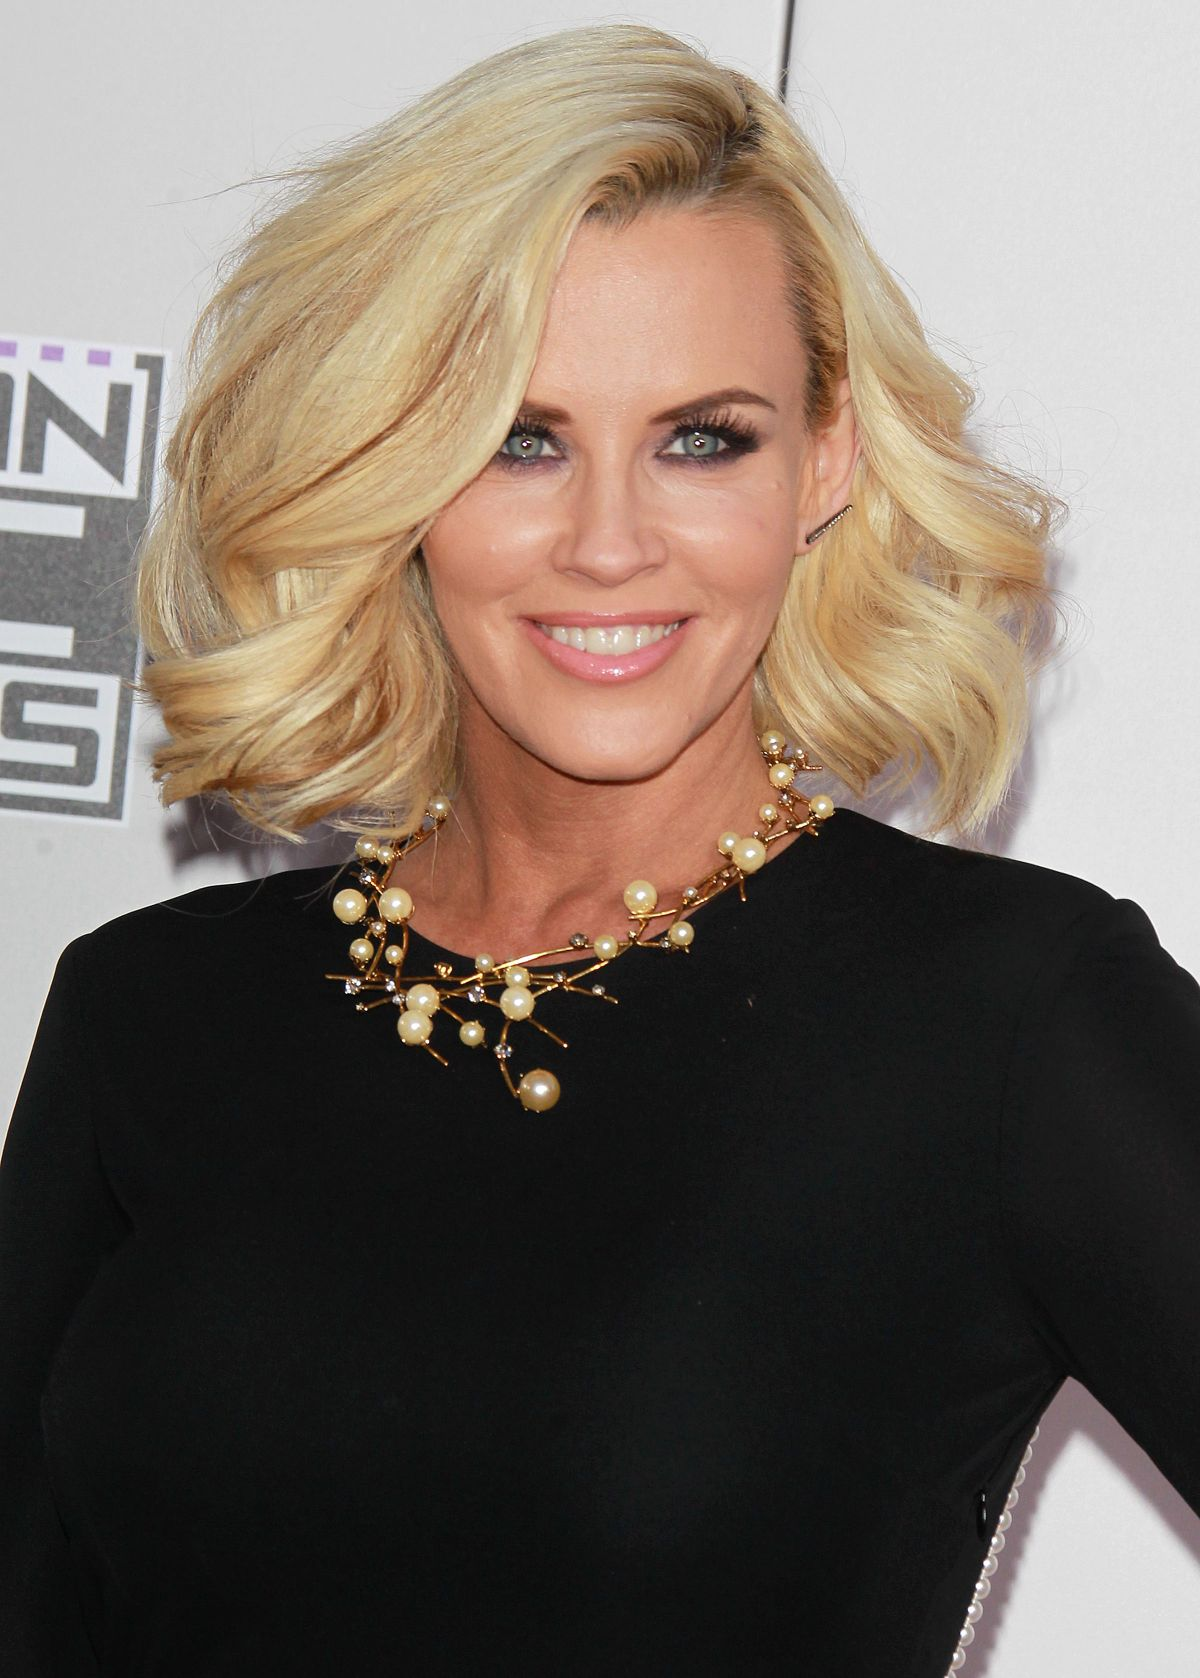 JENNY MCCARTHY at 2014 American Music Awards in Los Angeles ...